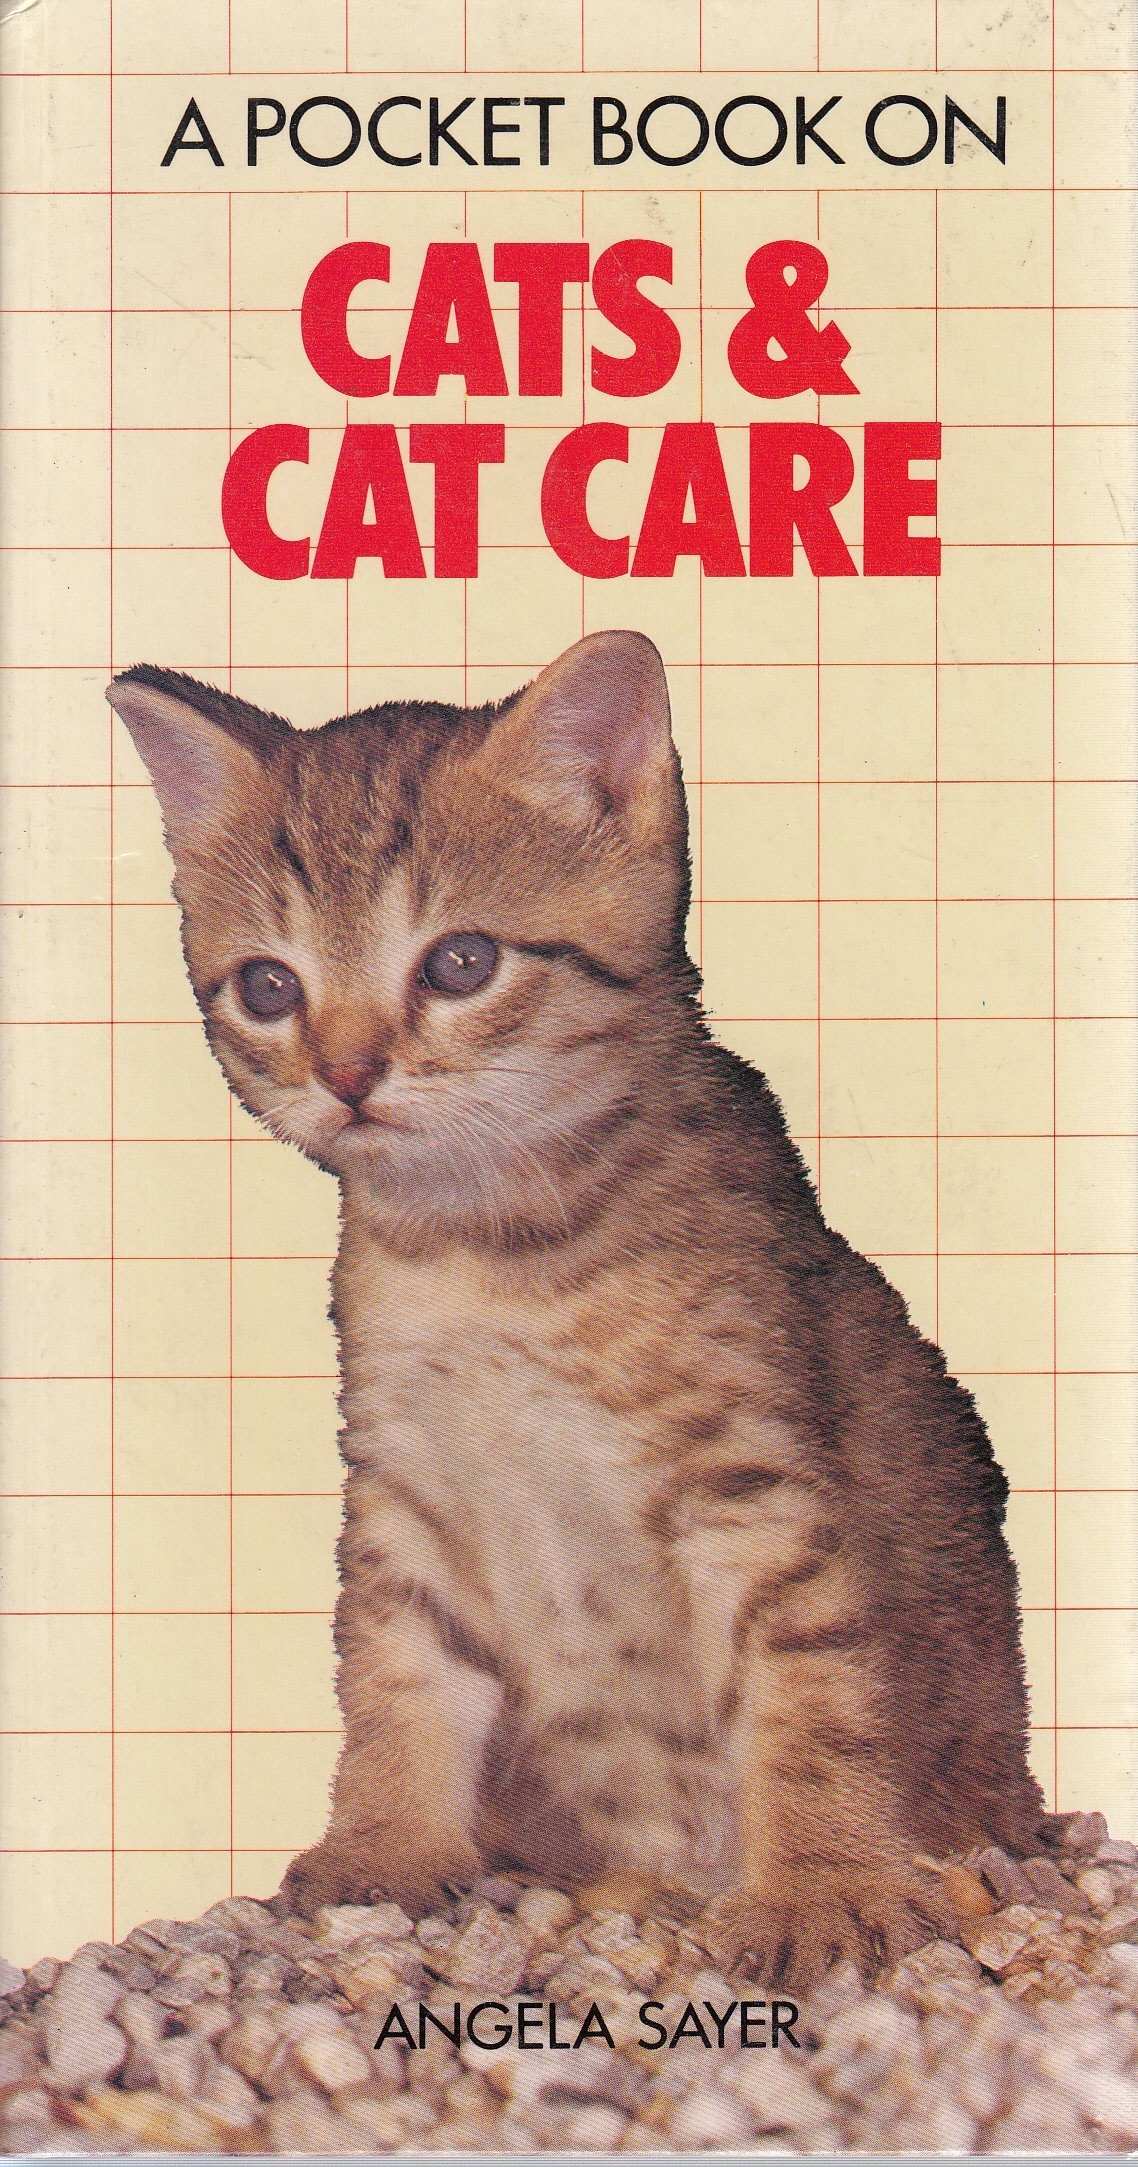 Pocket Book on Cats and Cat Care